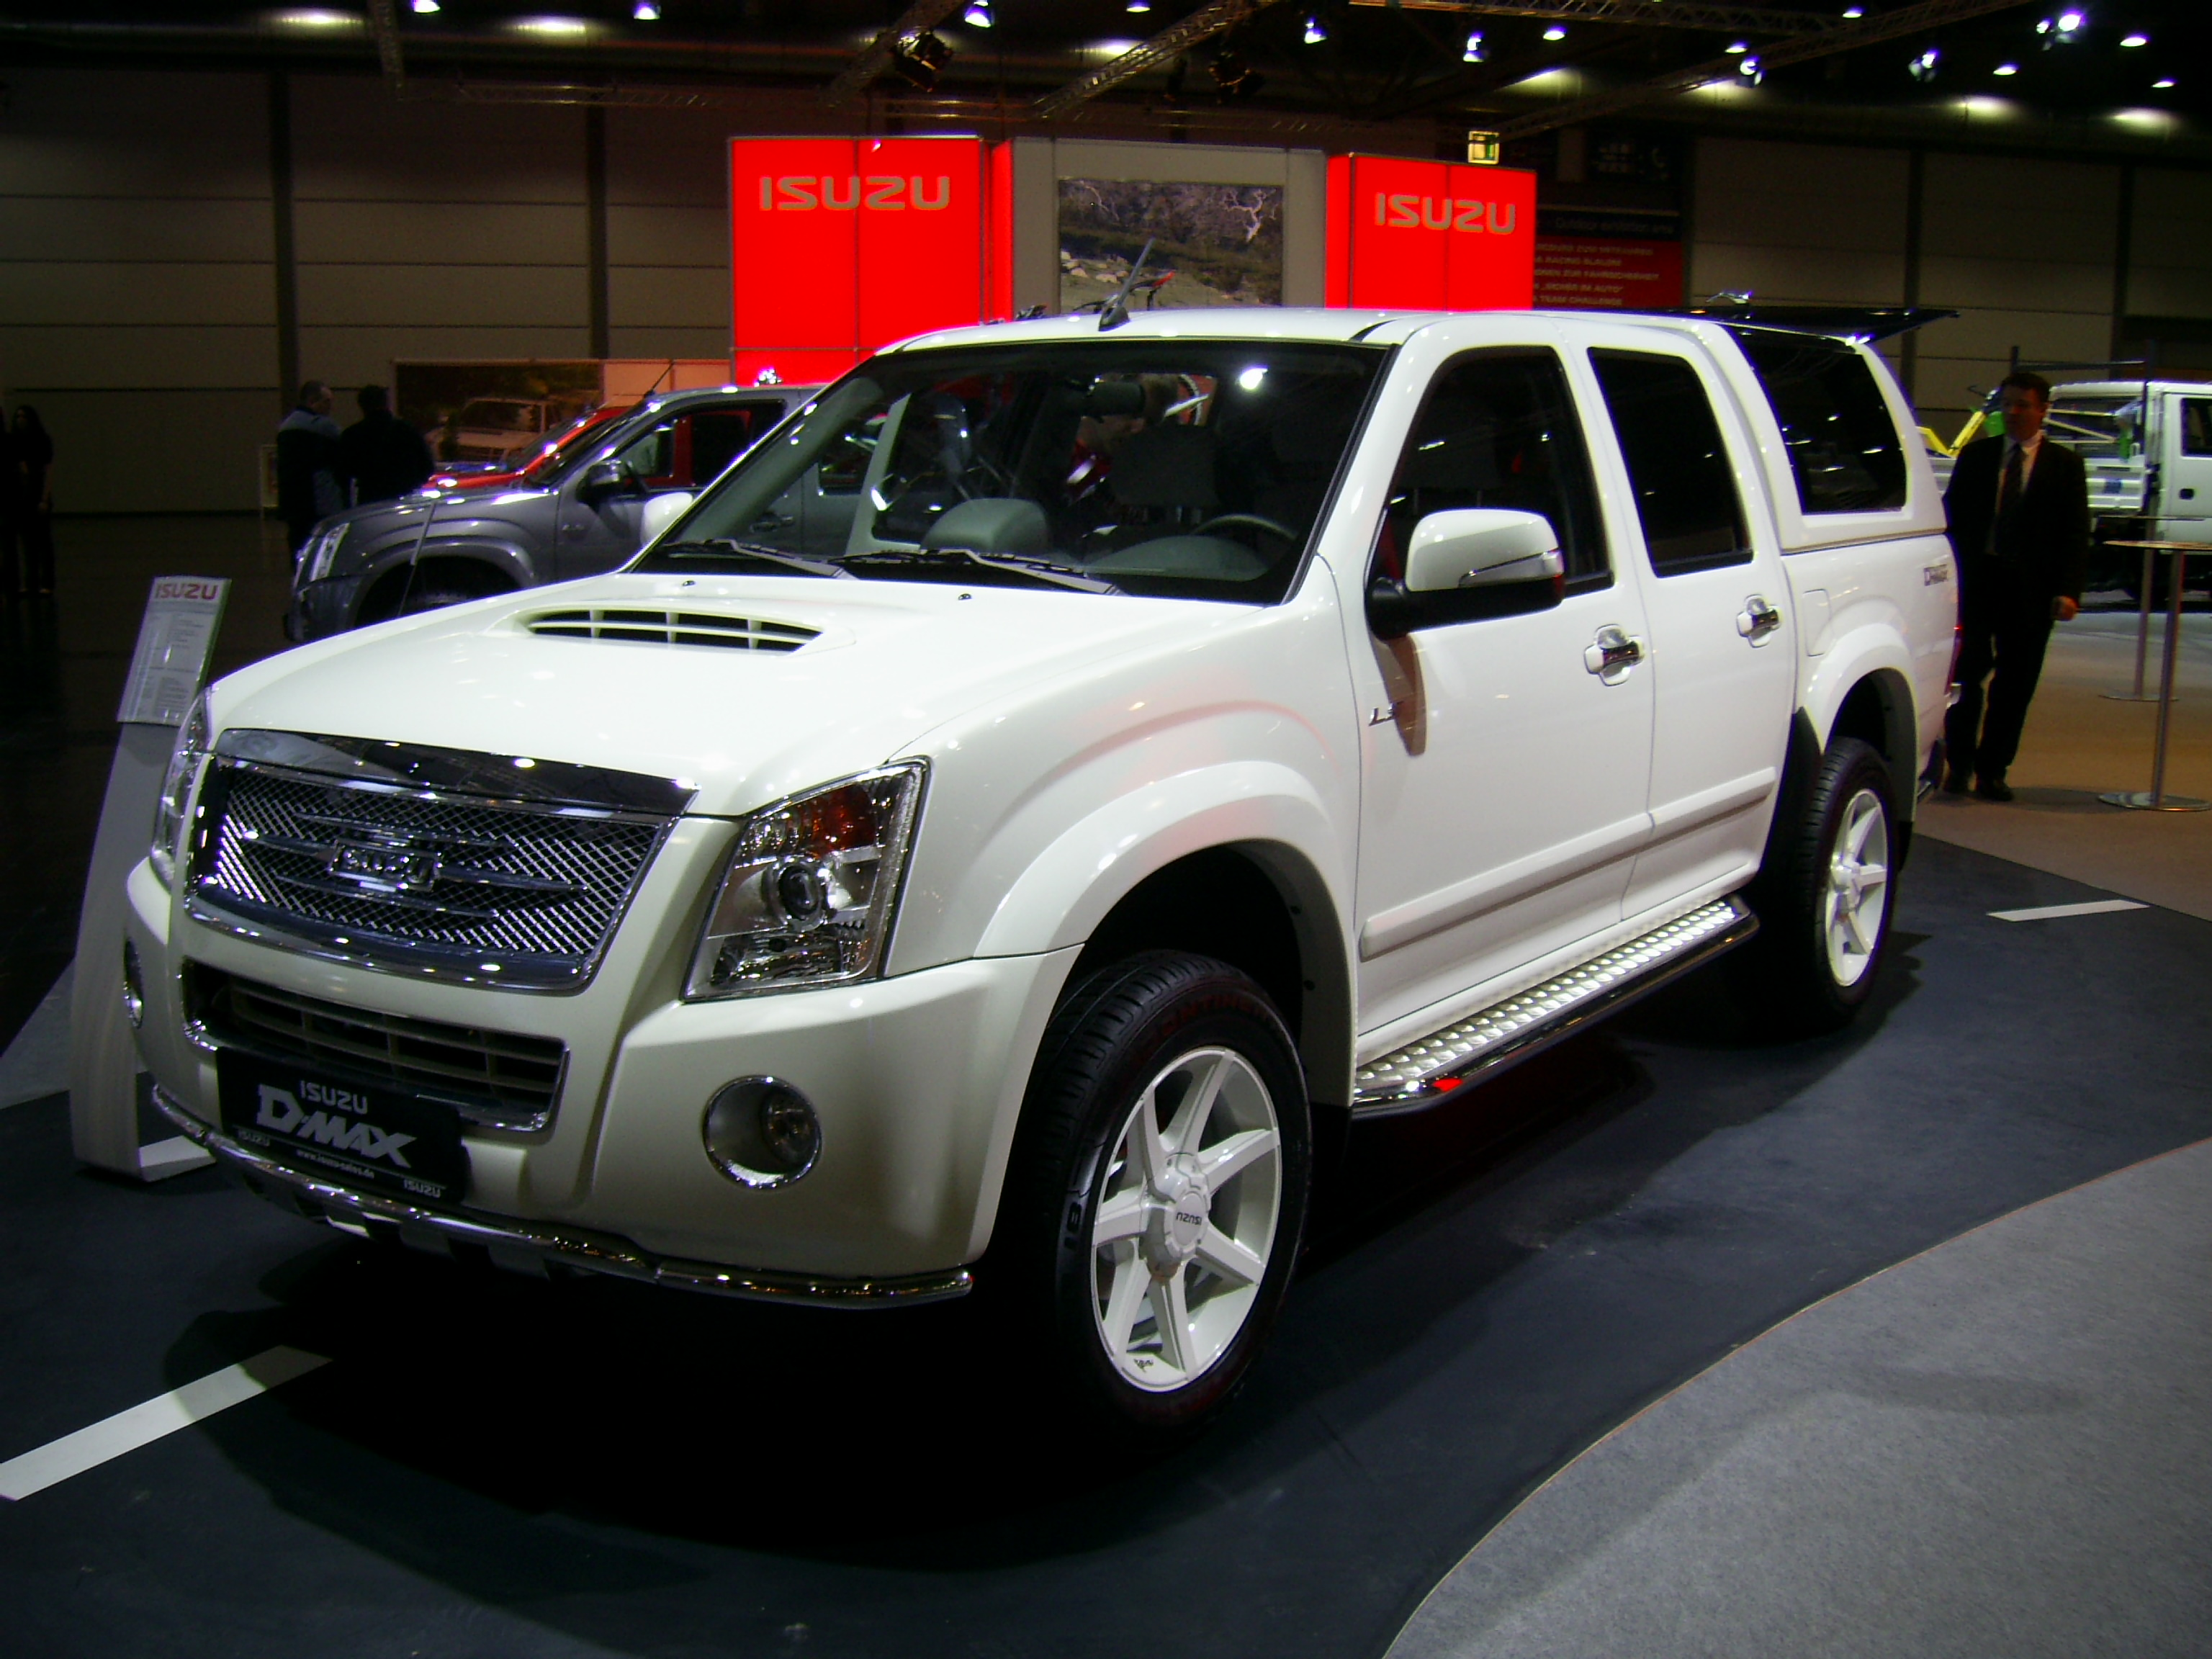 Isuzu type photo - 3